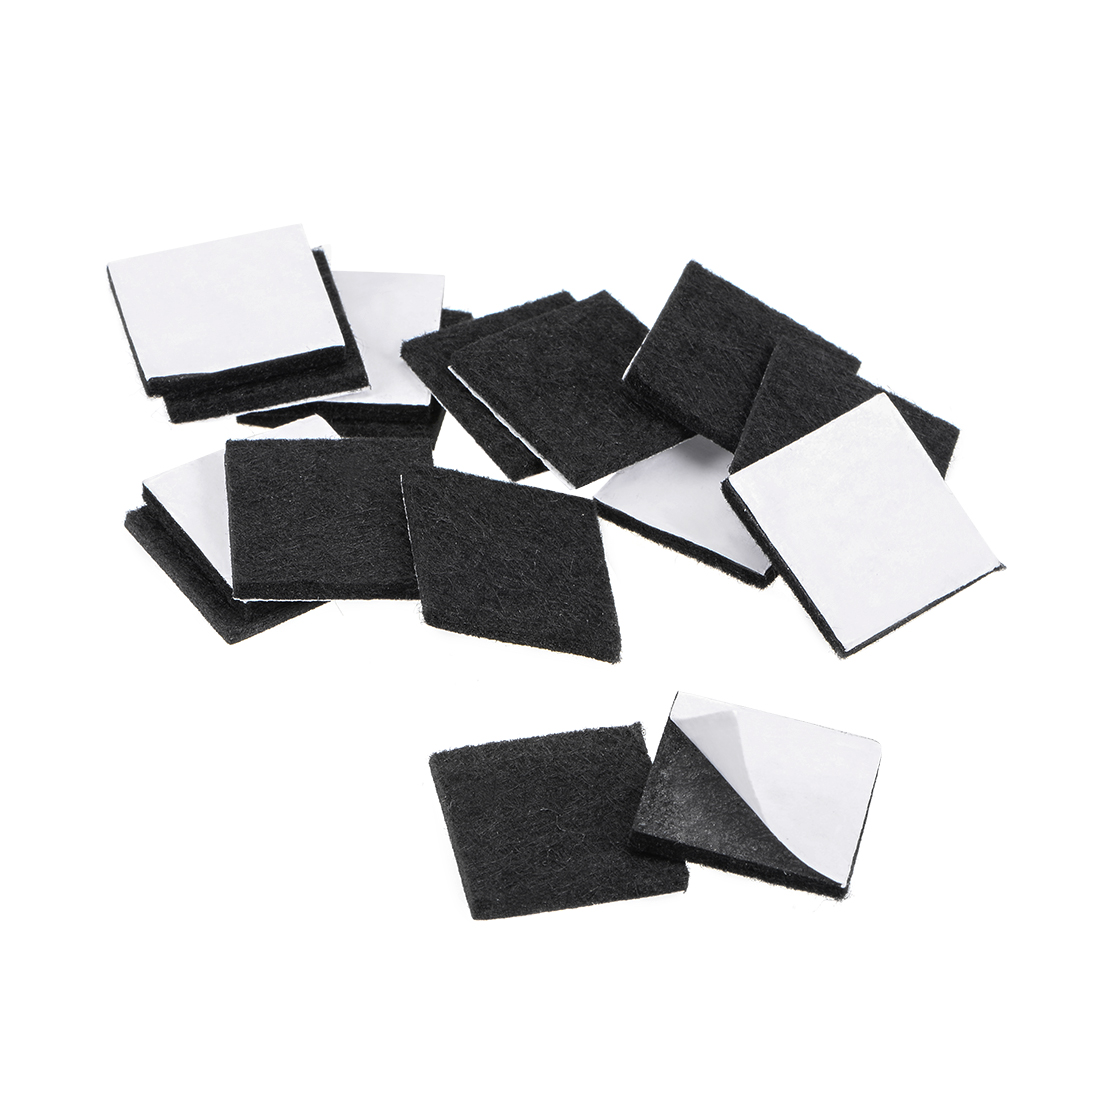 Furniture Pads Adhesive Felt Pads 25mm x 25mm Square 3mm Thick Black 48Pcs